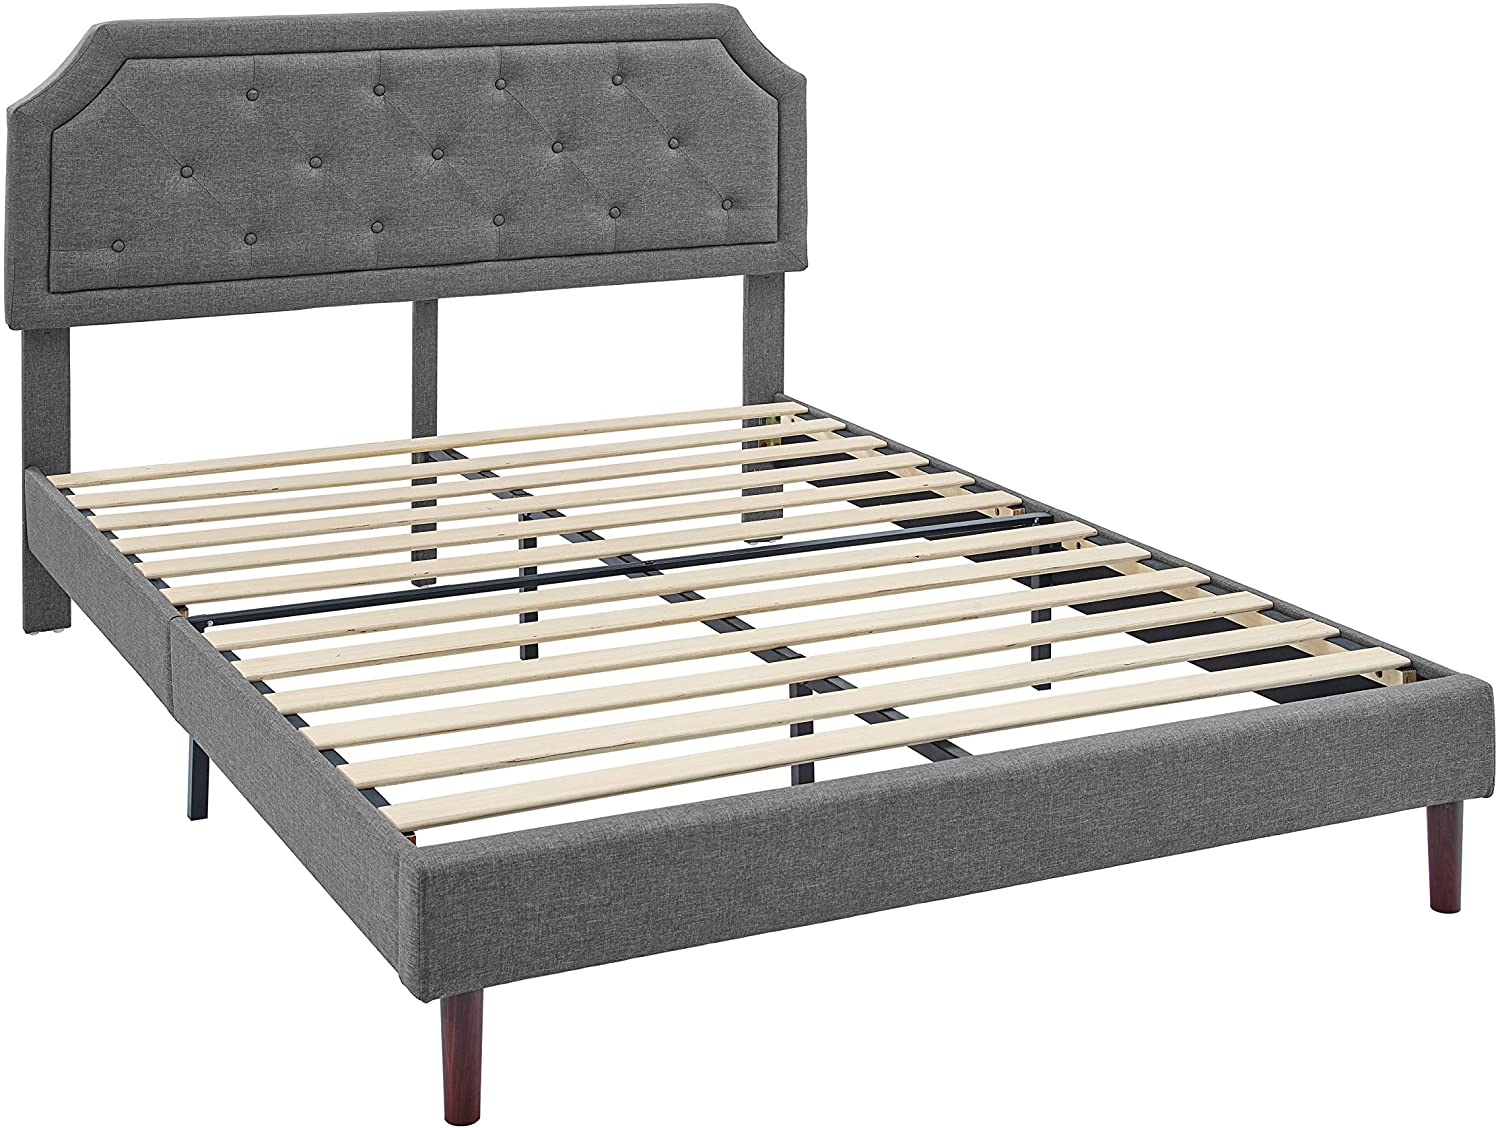 AmazonBasics Button Tufted-Upholstered Bed with Curve Design - Strong Wood Slat Support - Easy Assembly - Dark Grey, Queen